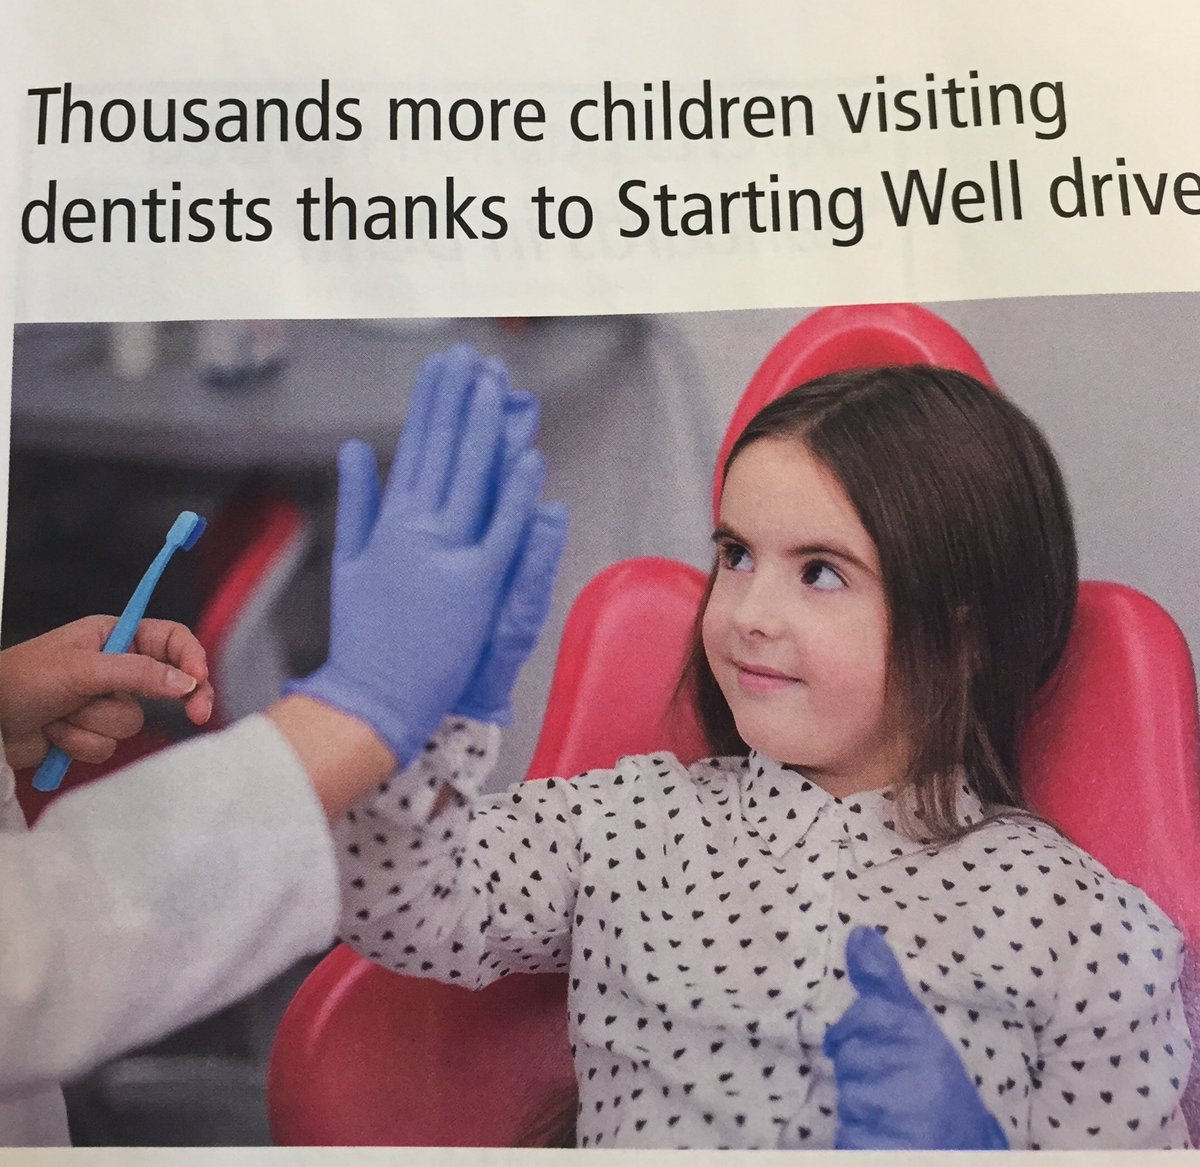 We are proud to be one of the chosen dental practices for this important drive. Some parents don't know what is important to their babies and toddlers oral health wise. #startingwell <br>http://pic.twitter.com/ZNH4plbgXH